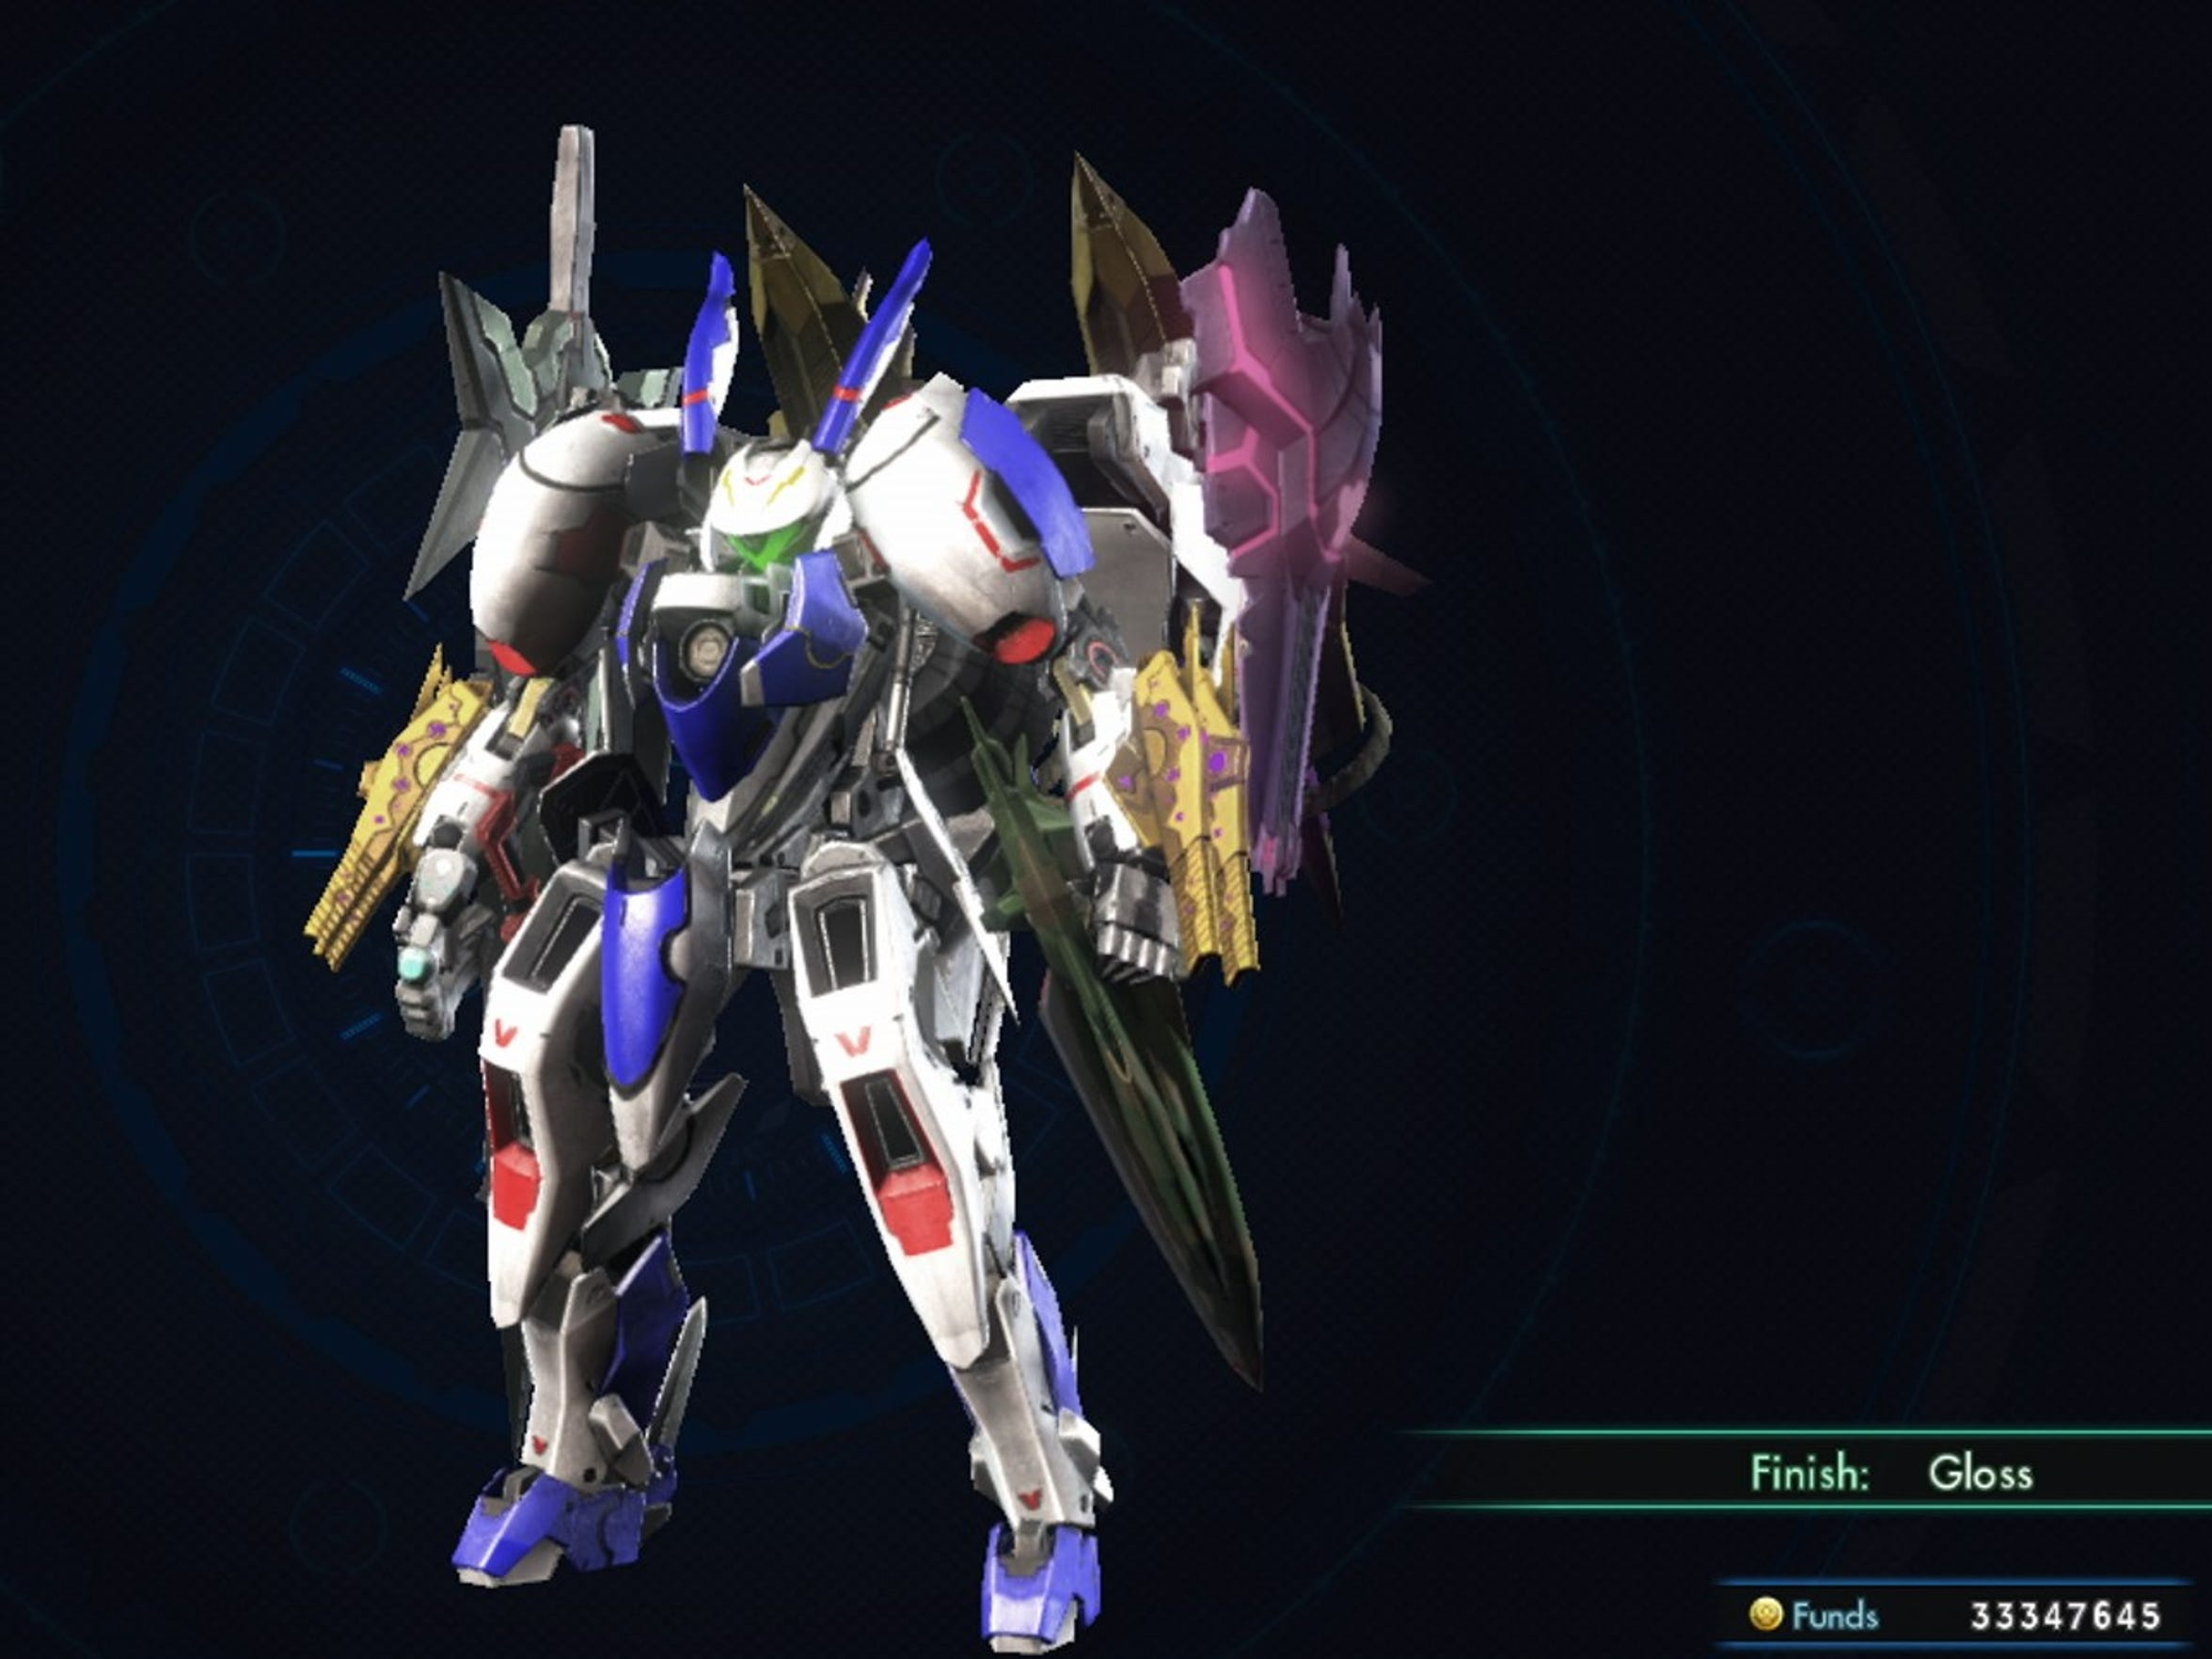 A Xenoblade Chronicles X Skell unit in Gundam colors. Or is it Dragonar-1 colors?